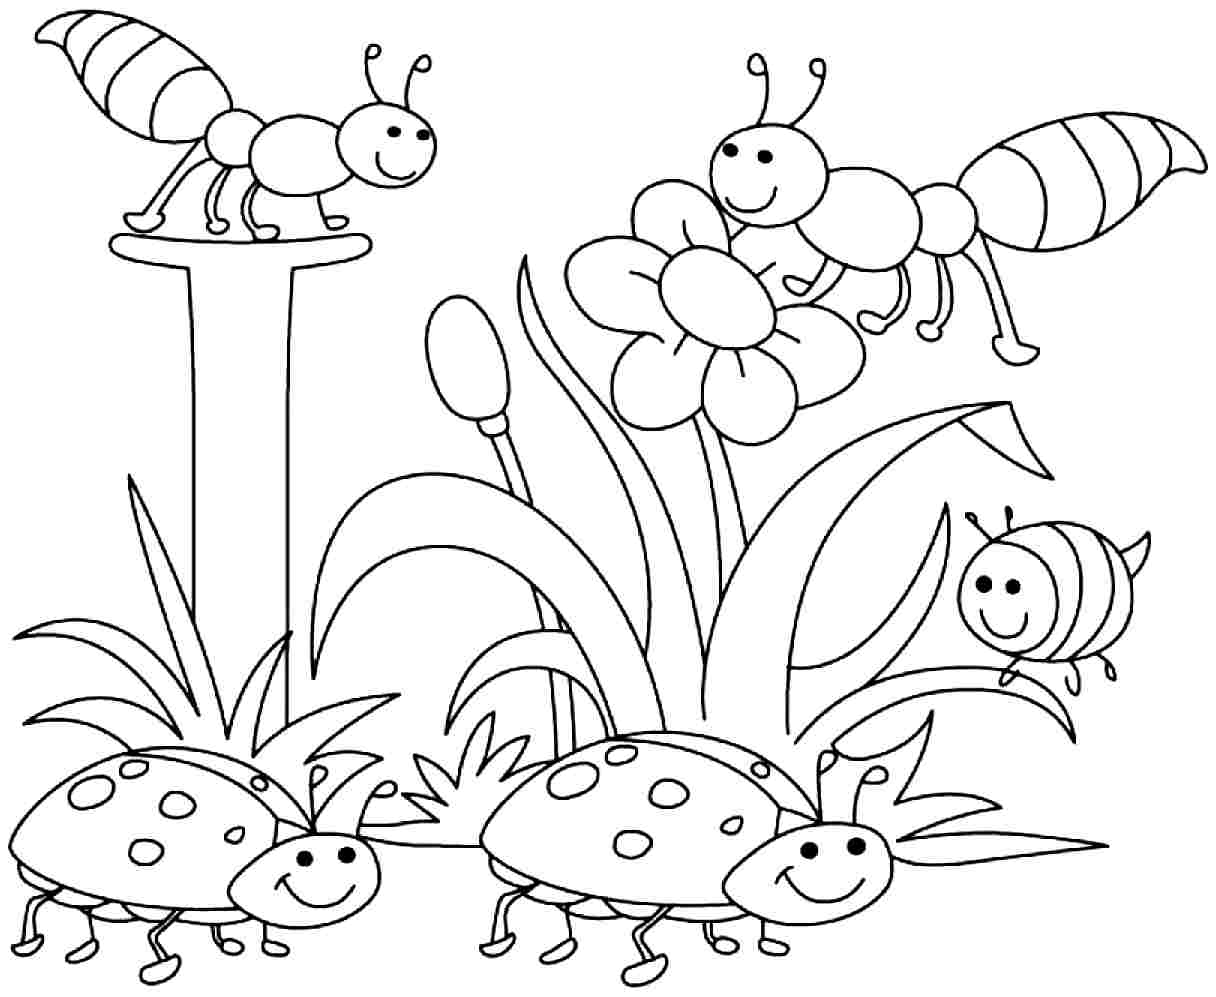 insect coloring sheets free printable bug coloring pages for kids sheets insect coloring 1 1